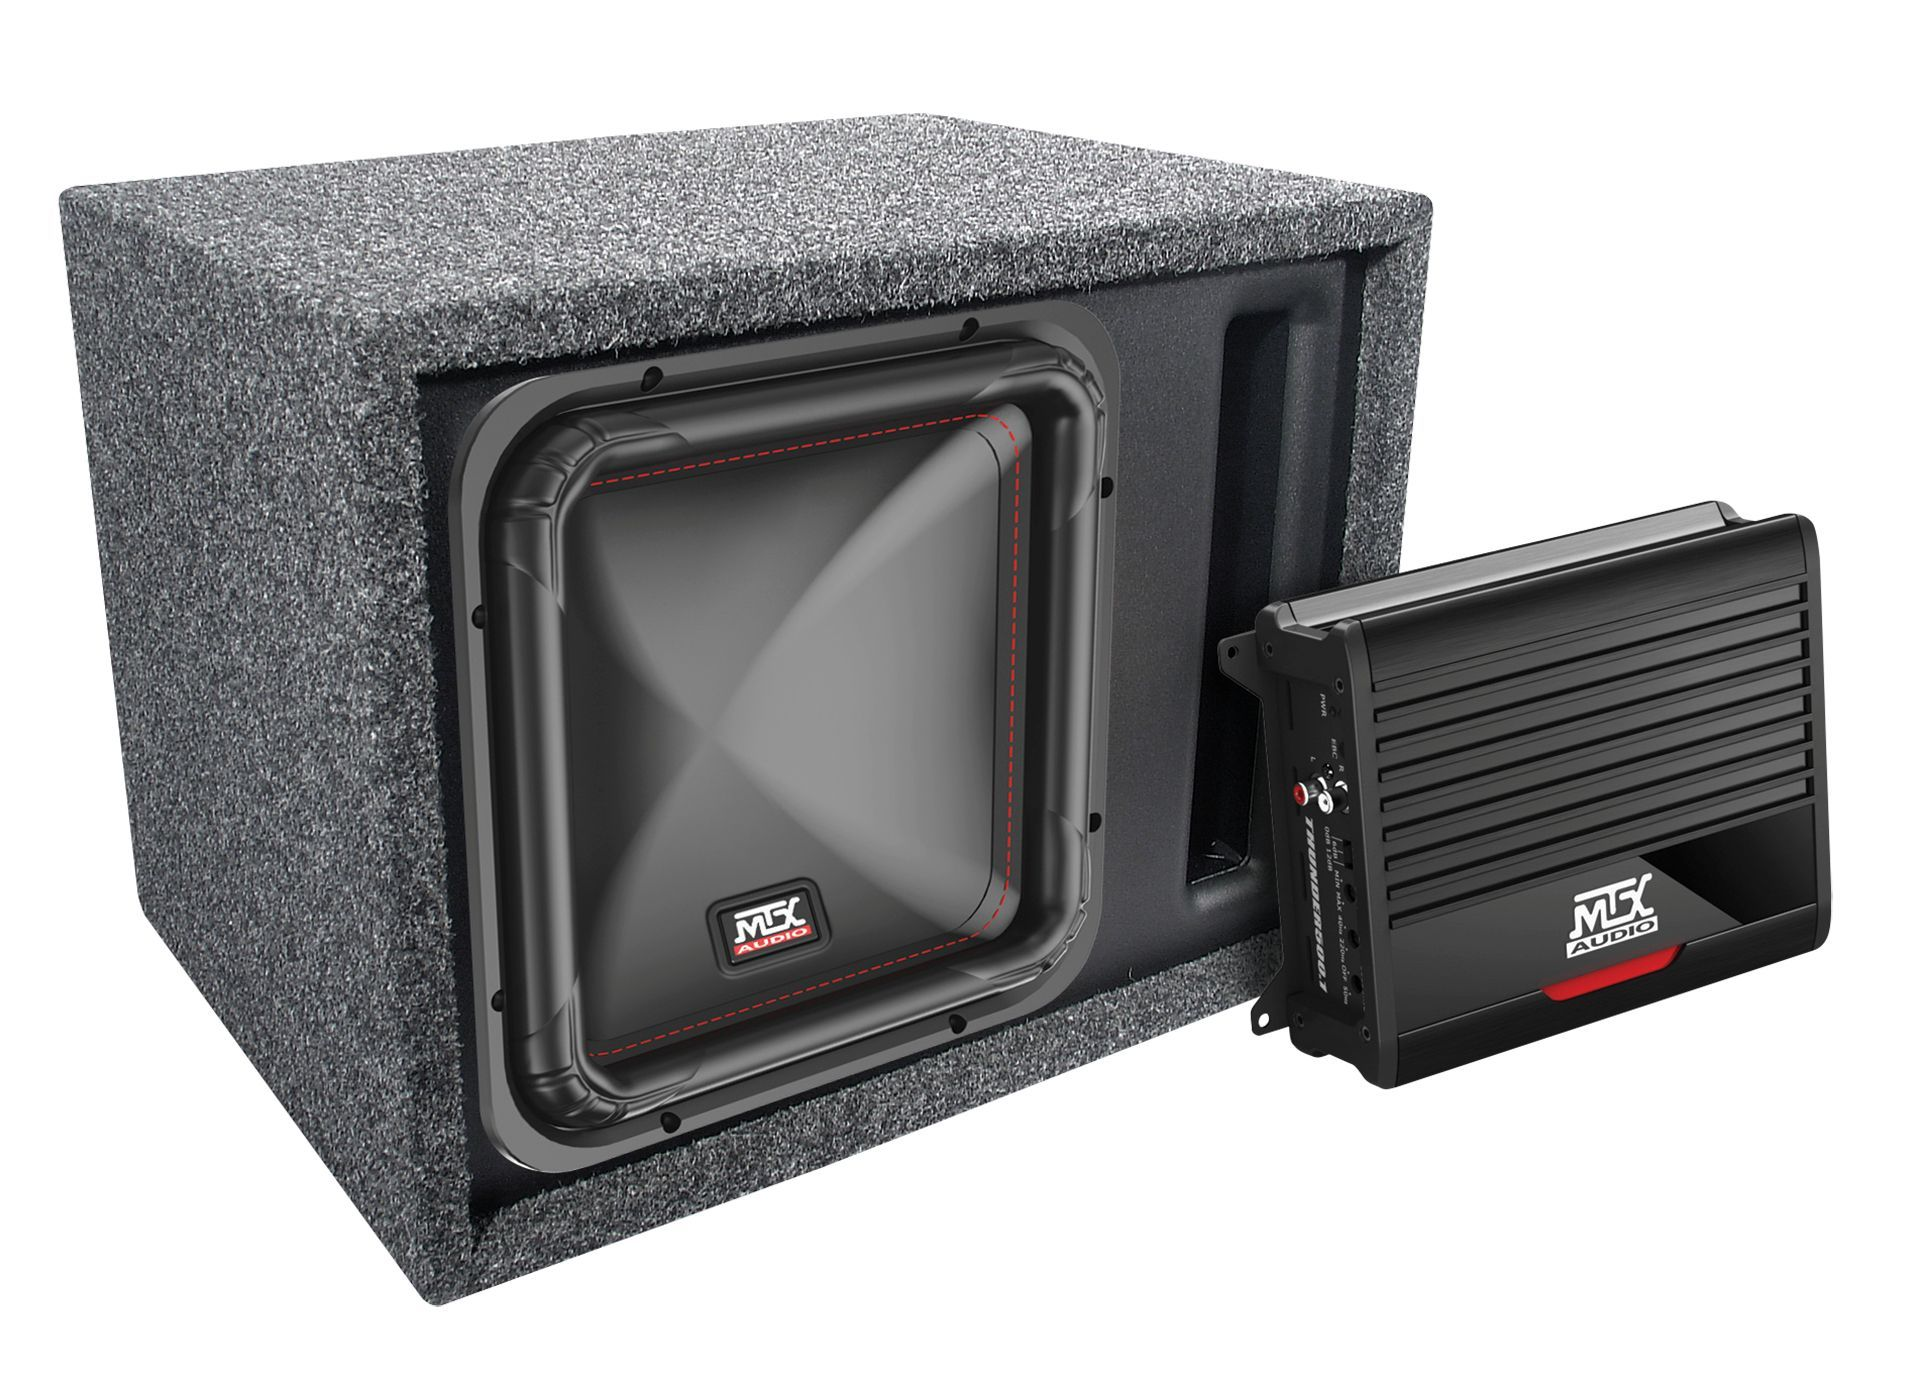 S6512-44, THUNDER500.1, and Vented Enclosure Bass Pacakge | MTX Audio -  Serious About Sound®